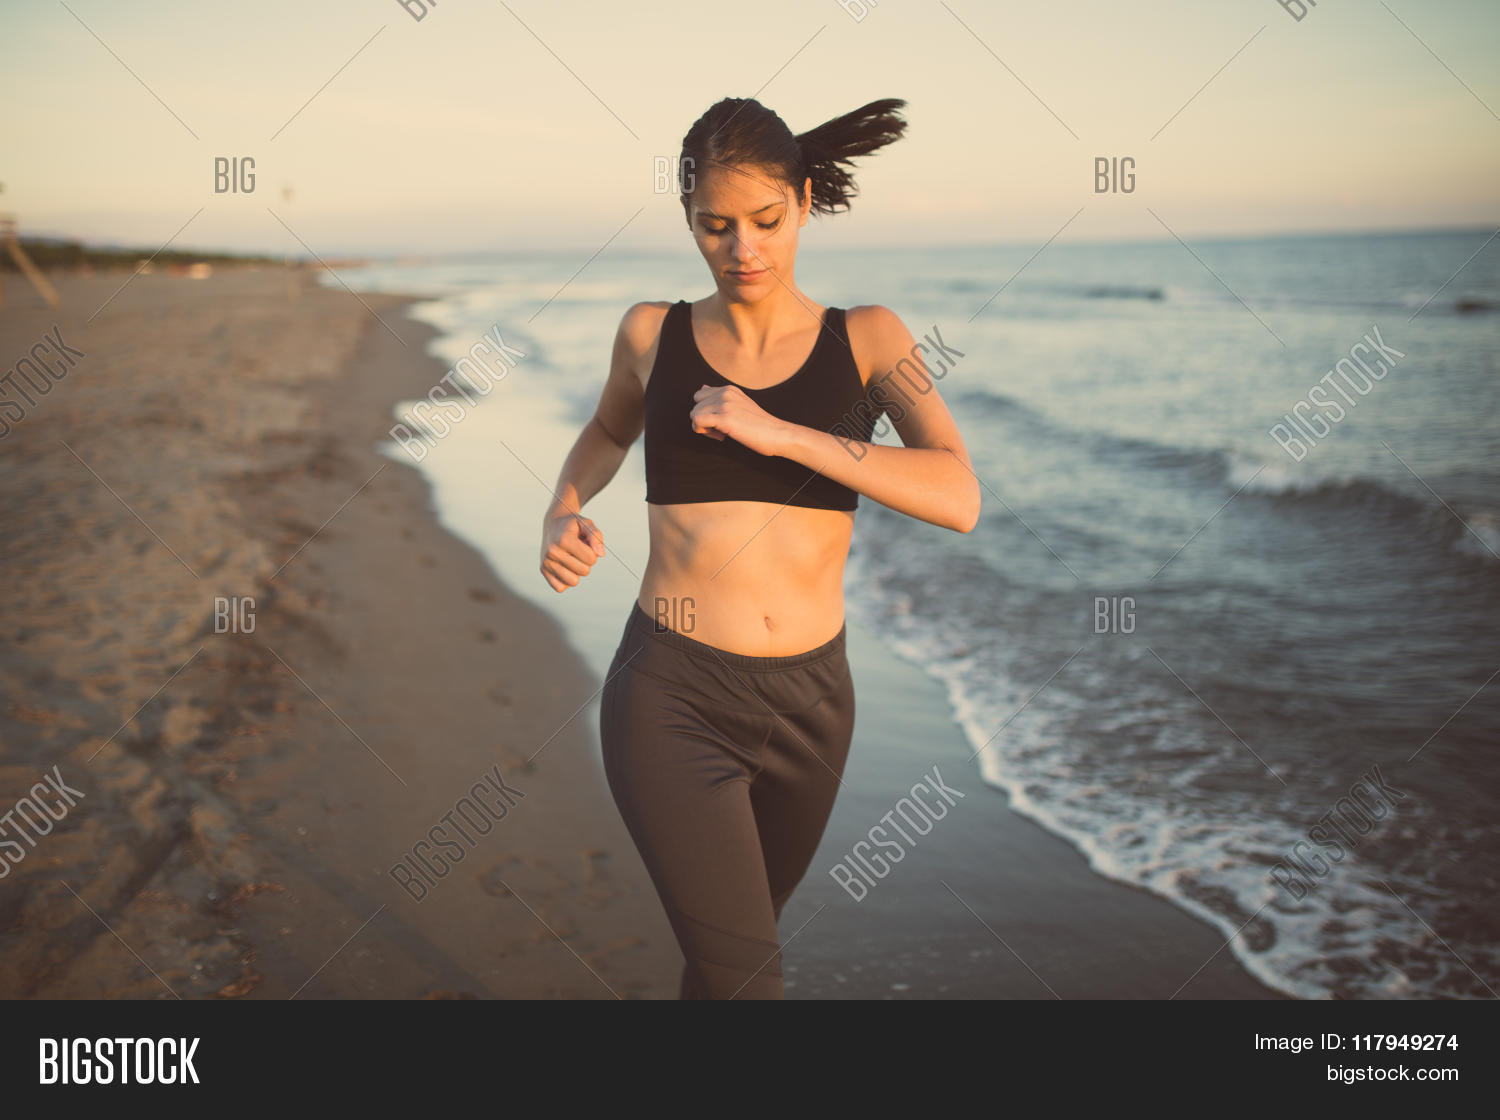 Beautiful Fit Female Image Photo Free Trial Bigstock 407 free images of woman jogging. beautiful fit female image photo